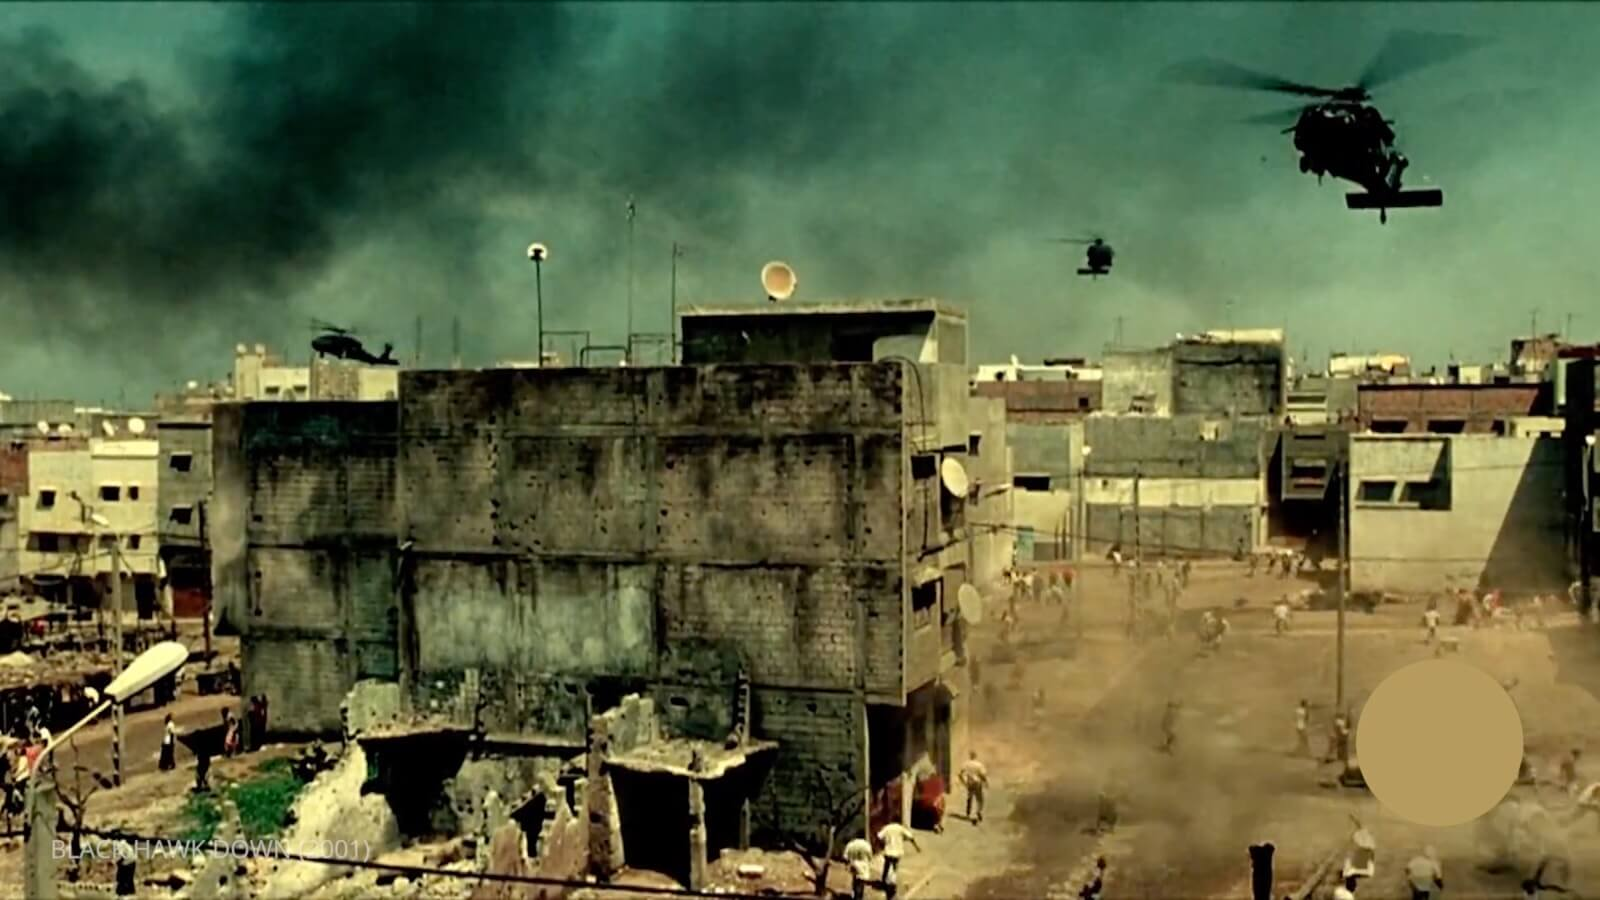 black hawk down narrative theory analysis Culture and literature the present article provides an analysis of the narrative based on a close reading of ridley scott's war film black hawk down.